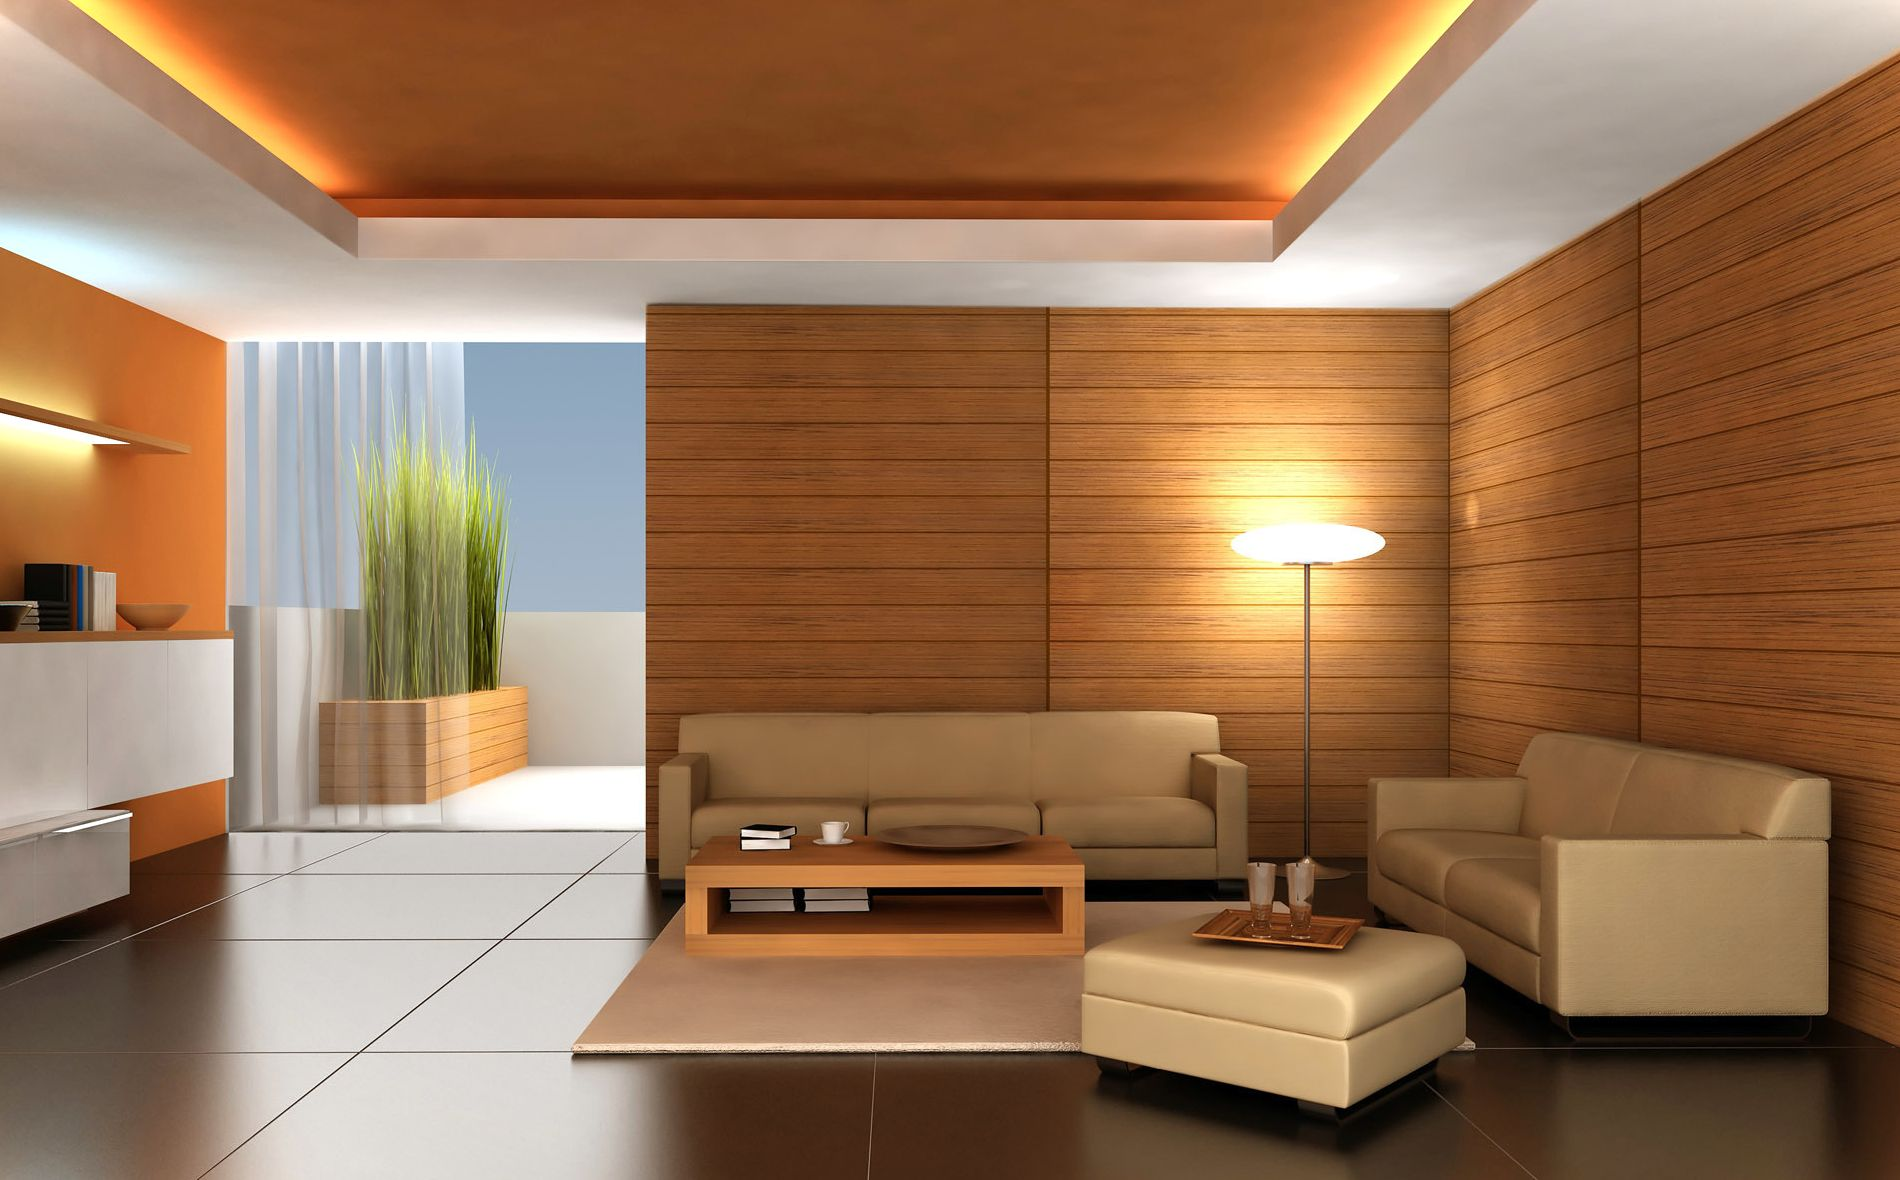 lighting design living room. Charm Impression Living Room Lighting Ideas. Designs Ideas R Design